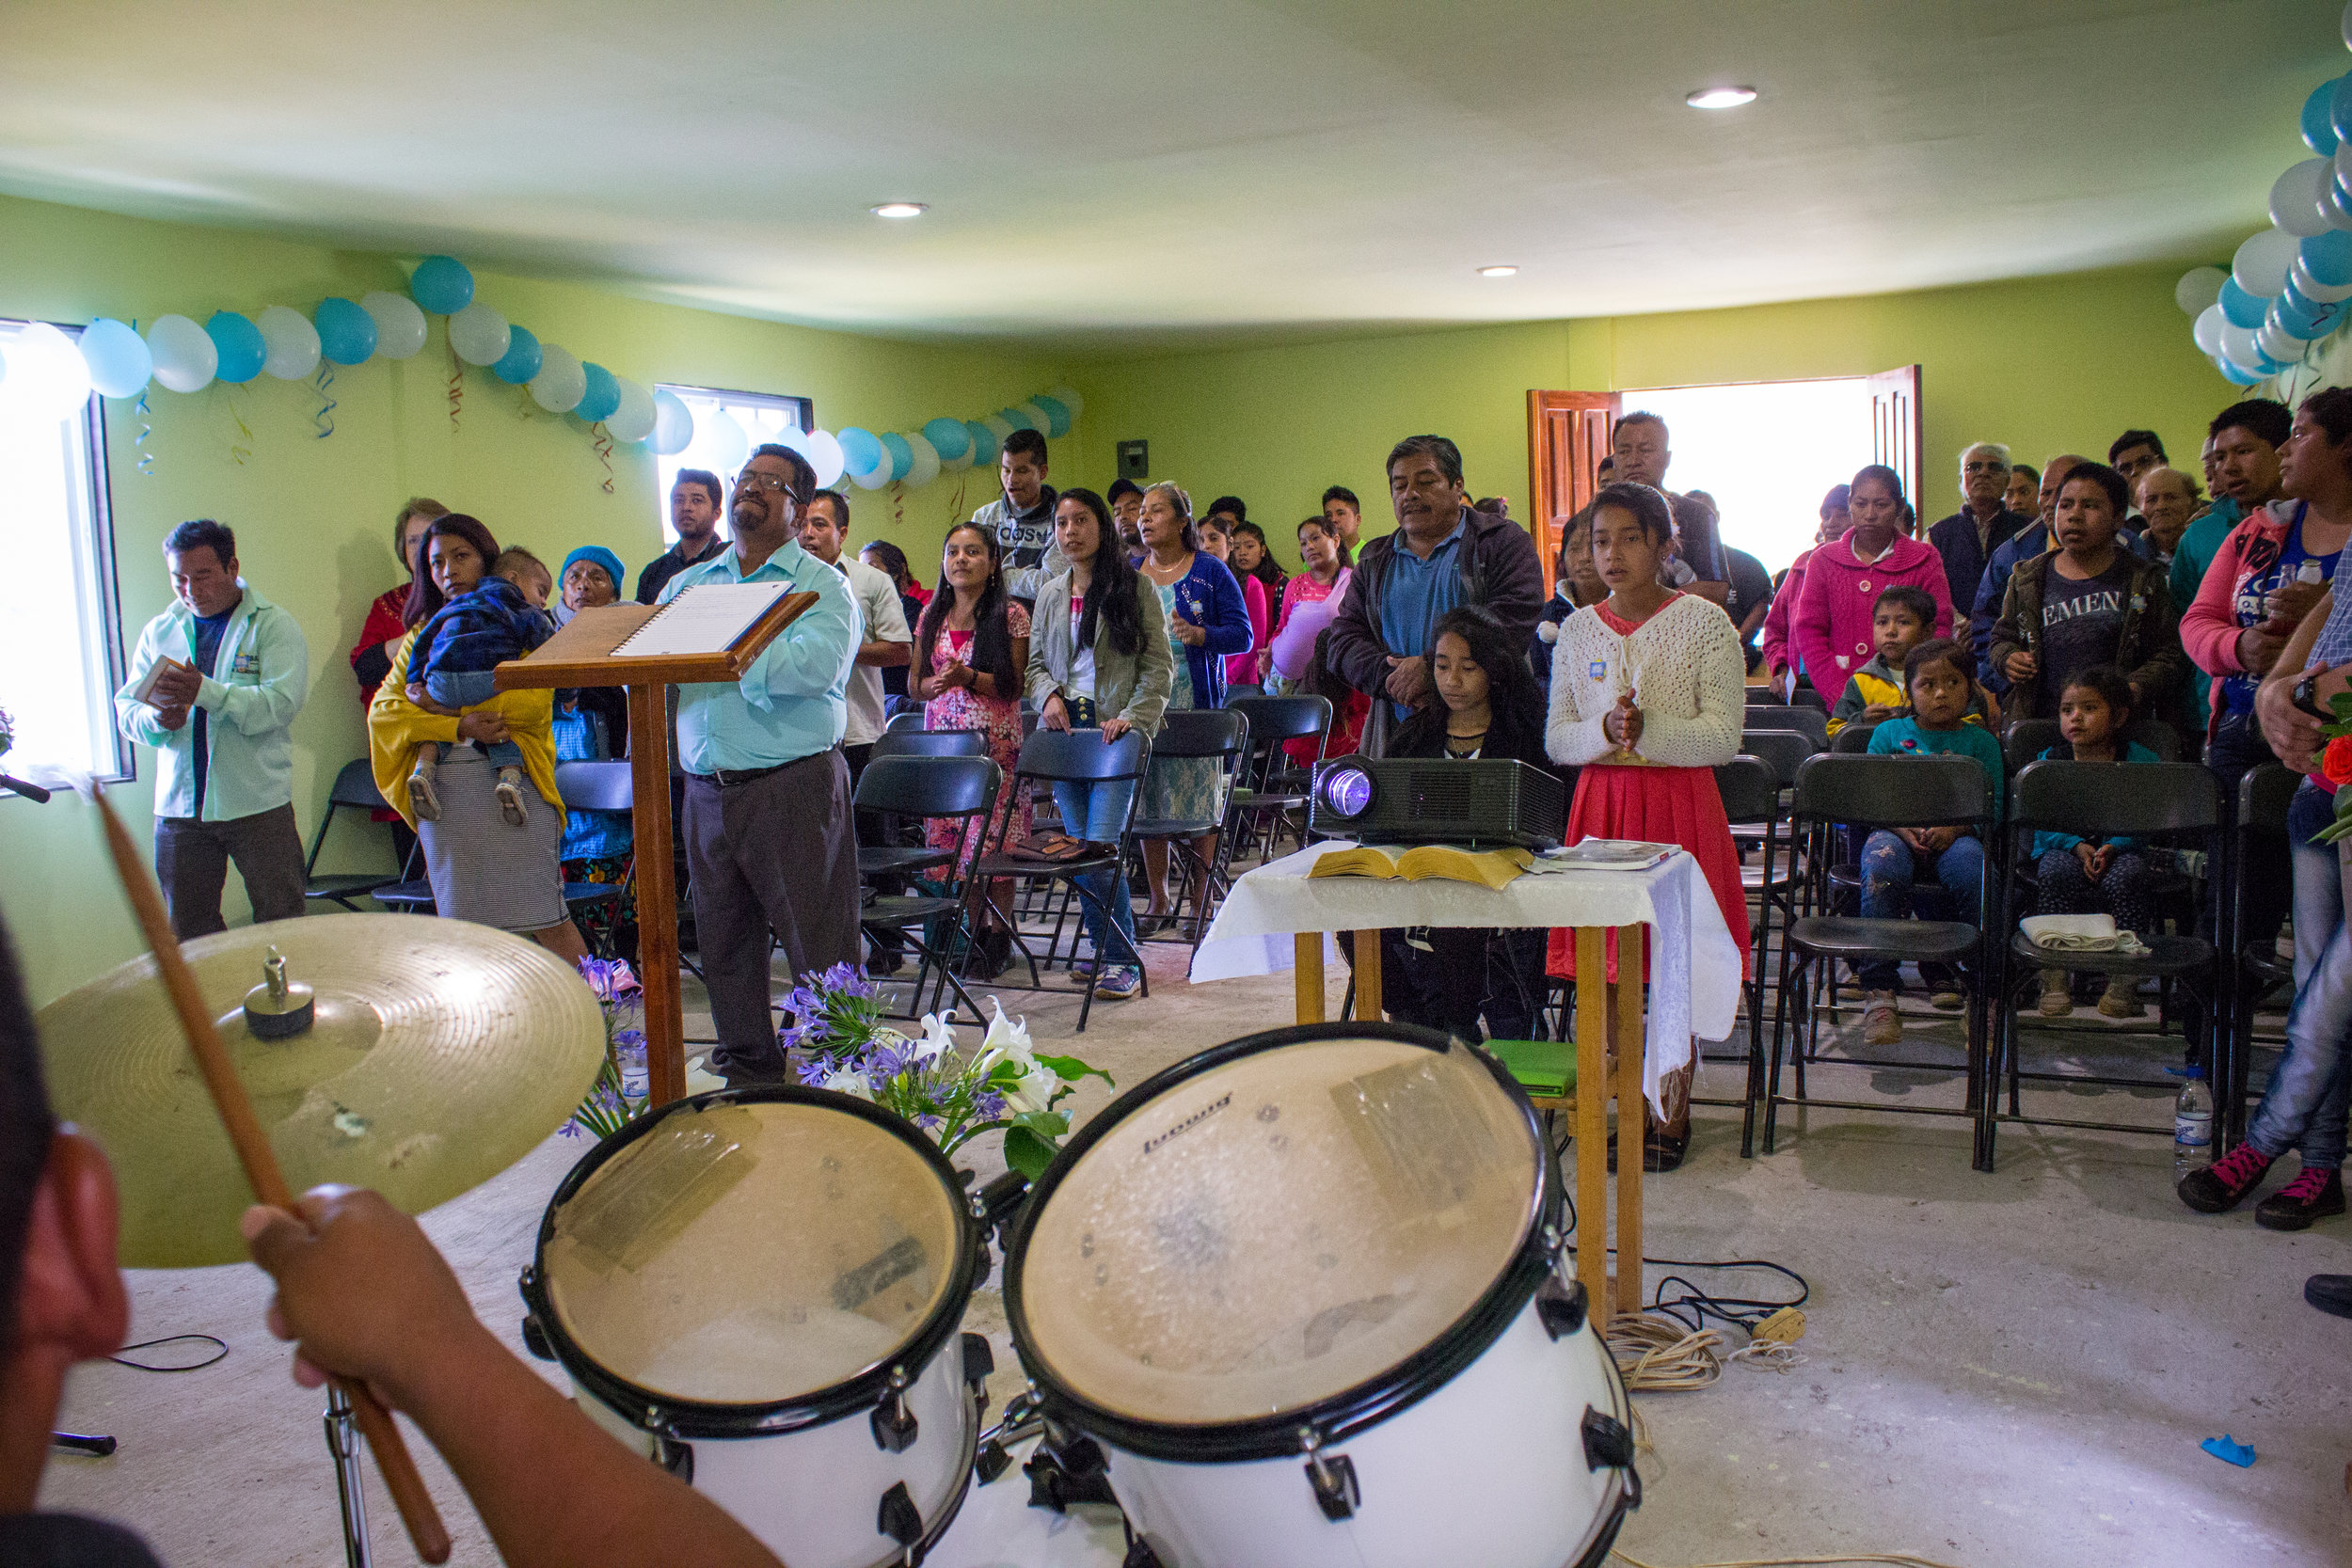 A packed house. Many of the families that Senen and Bernardita invited have expressed an interest in the church, but are not considered Christians.